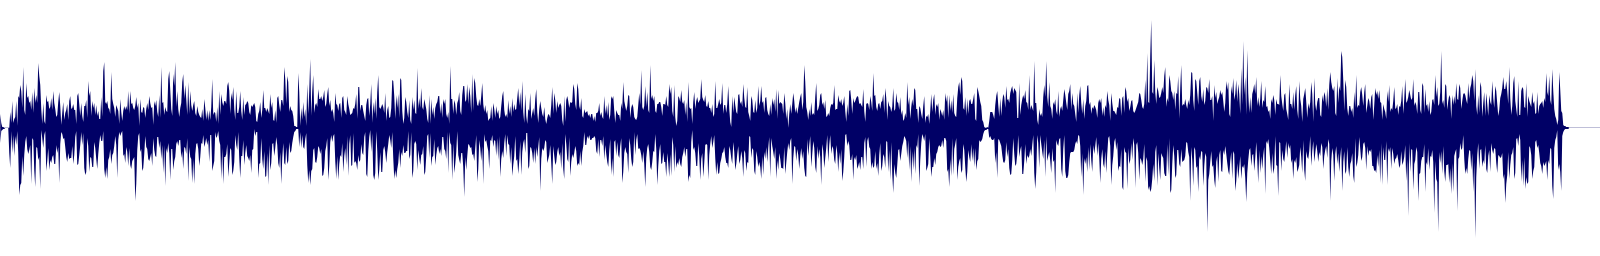 waveform of track #130285